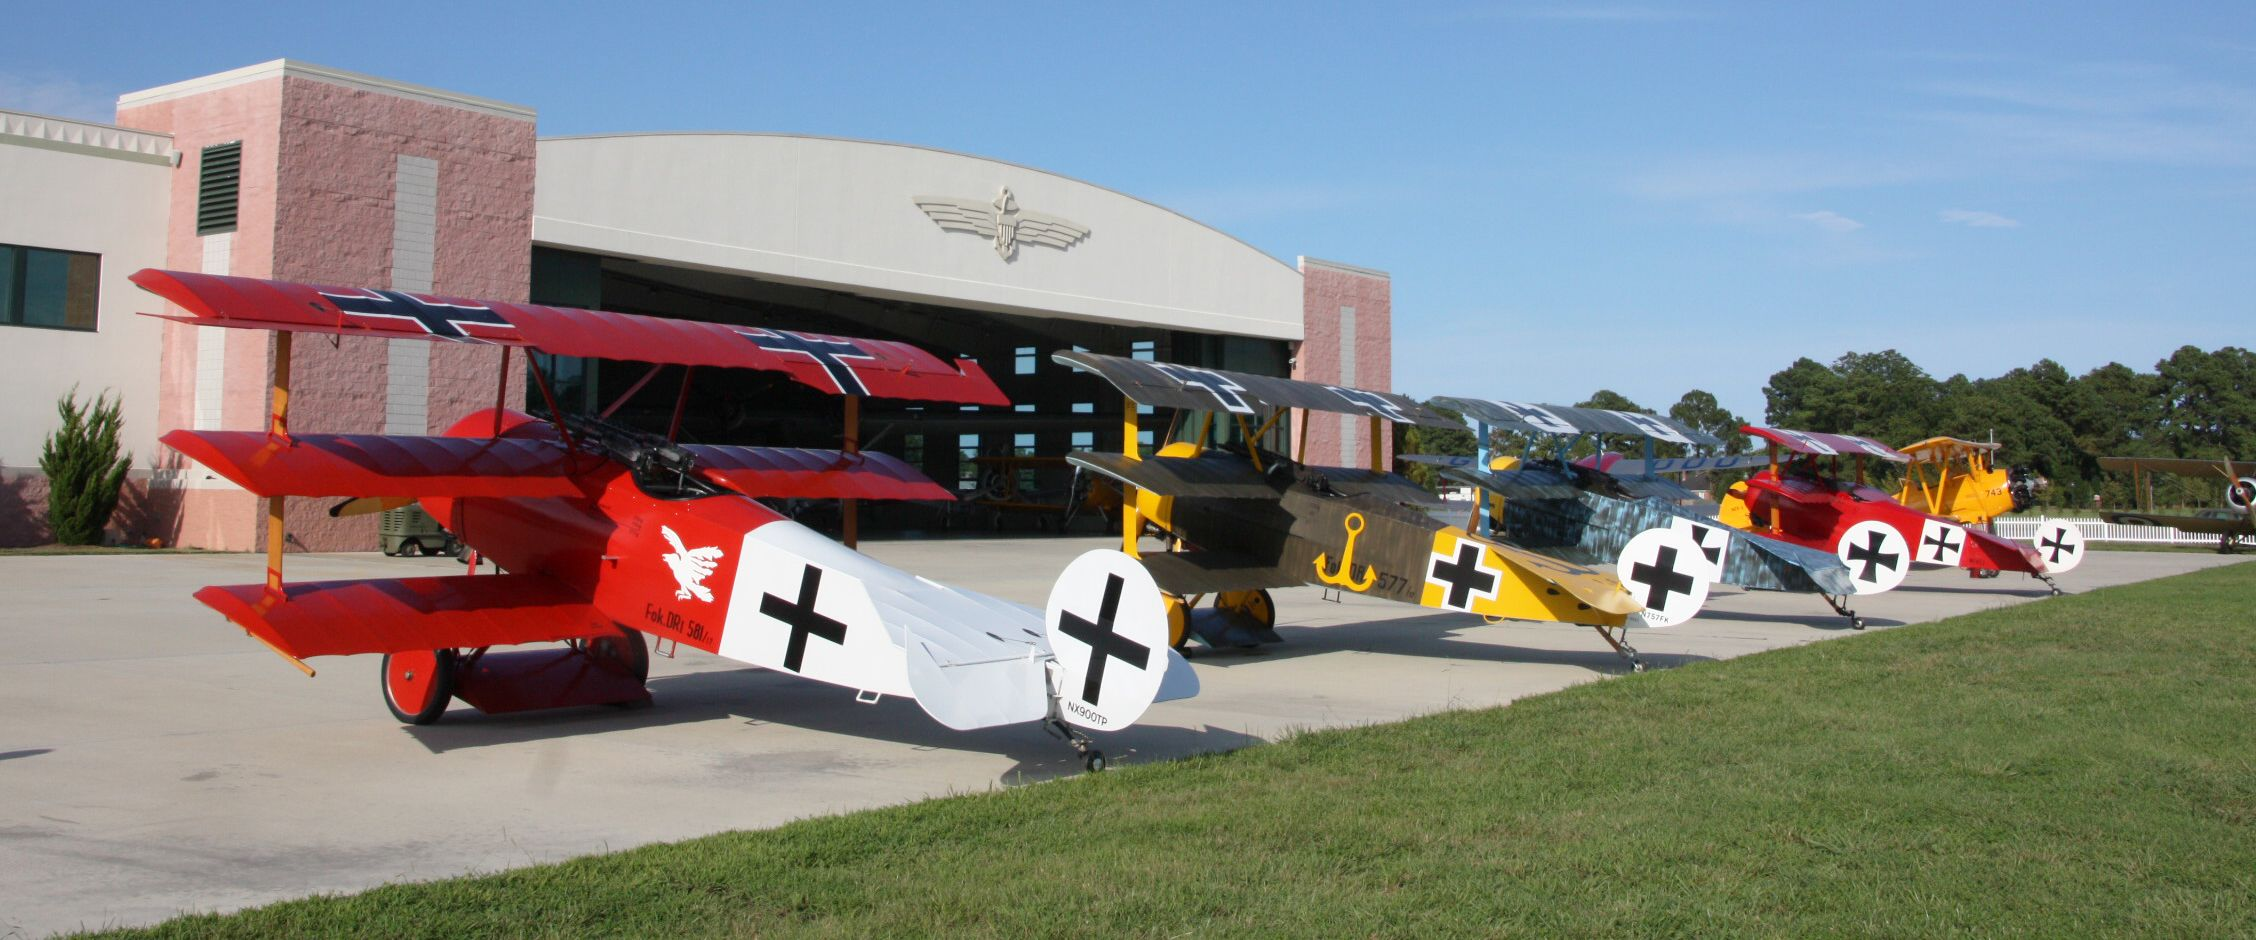 These Ww I Planes Can Be Seen At The Military Aviation Museum Pungo Va Beach This Is One Of Six Hangers Your Visit After Entry